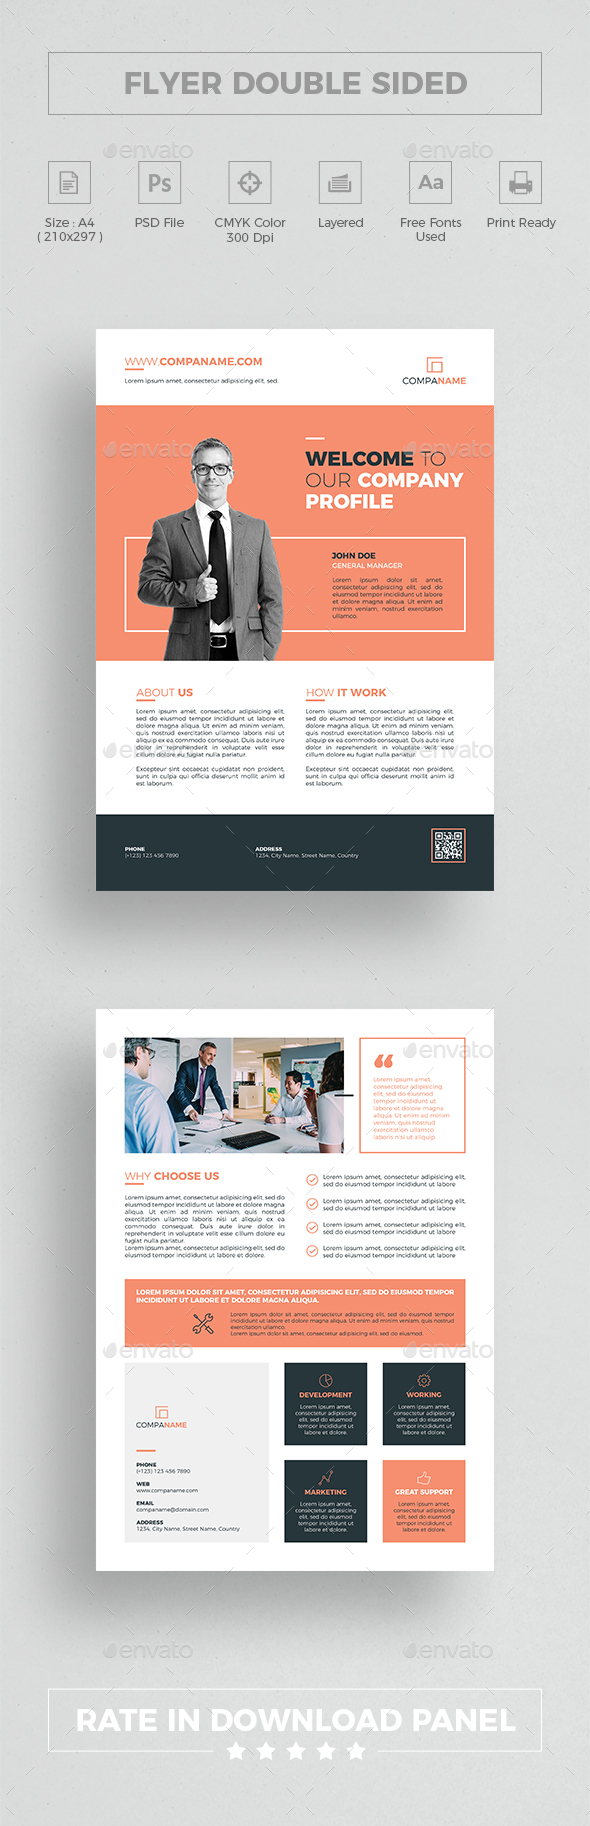 Flyer Double Sided - Corporate Flyers